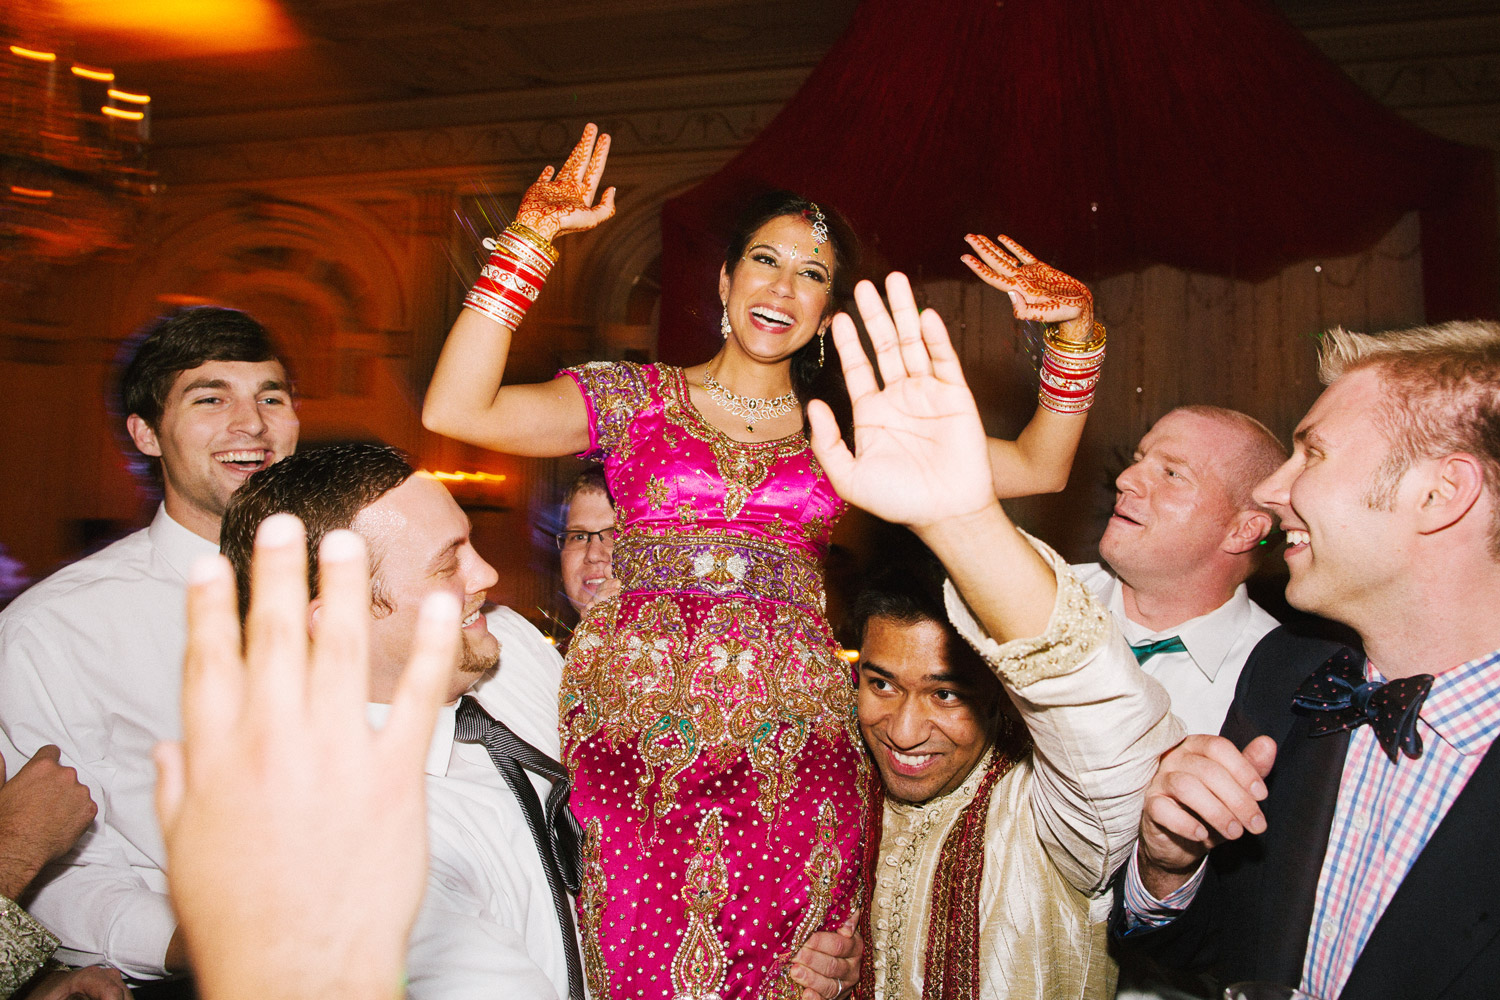 louisville_indian_wedding.jpg